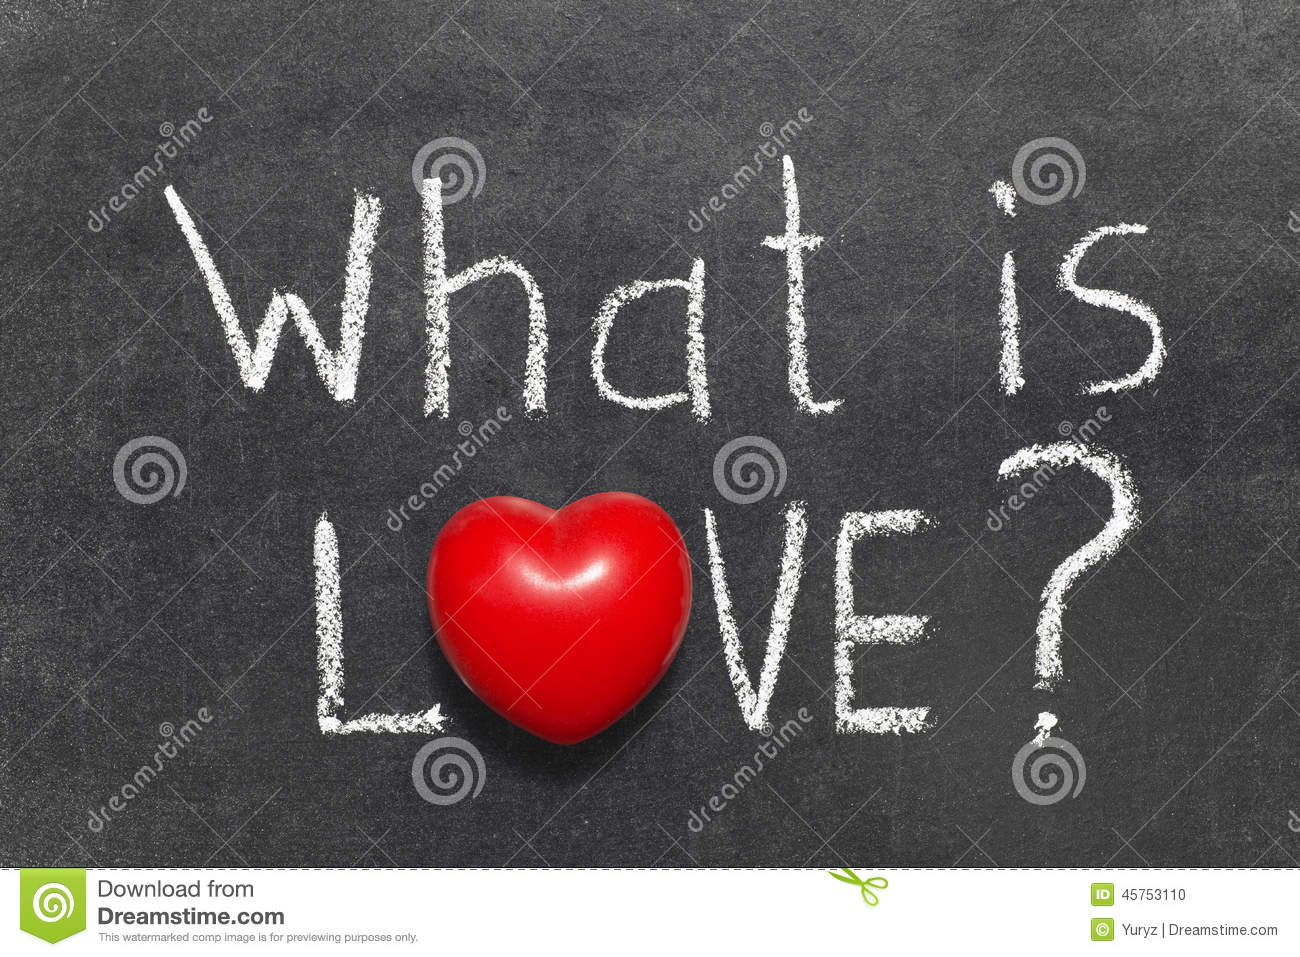 TO THE QUESTION ABOUT LOVE 79